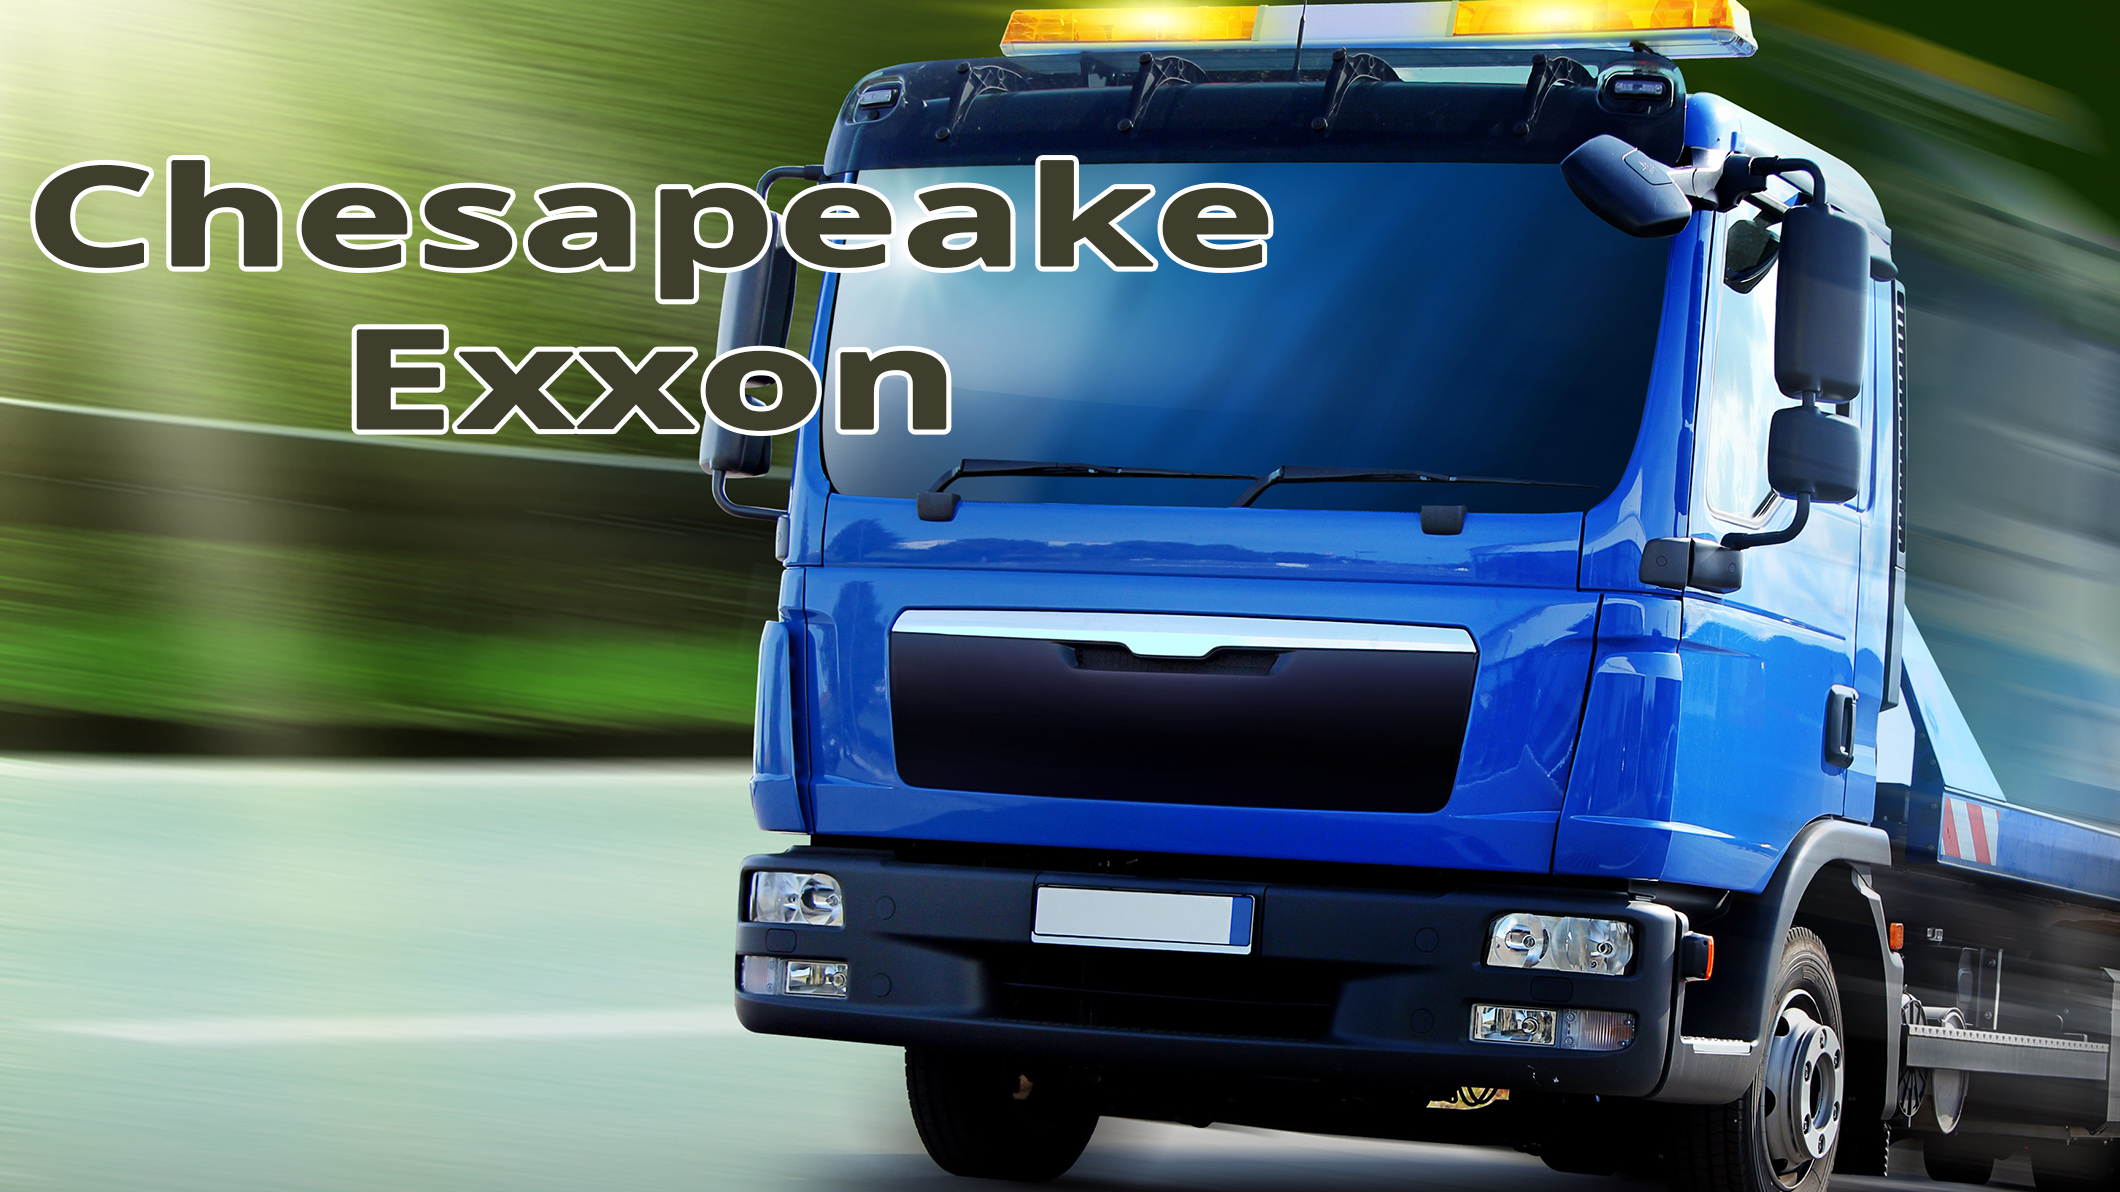 Chesapeake exxon in annapolis md 21401 for Wayne motor vehicle inspection hours